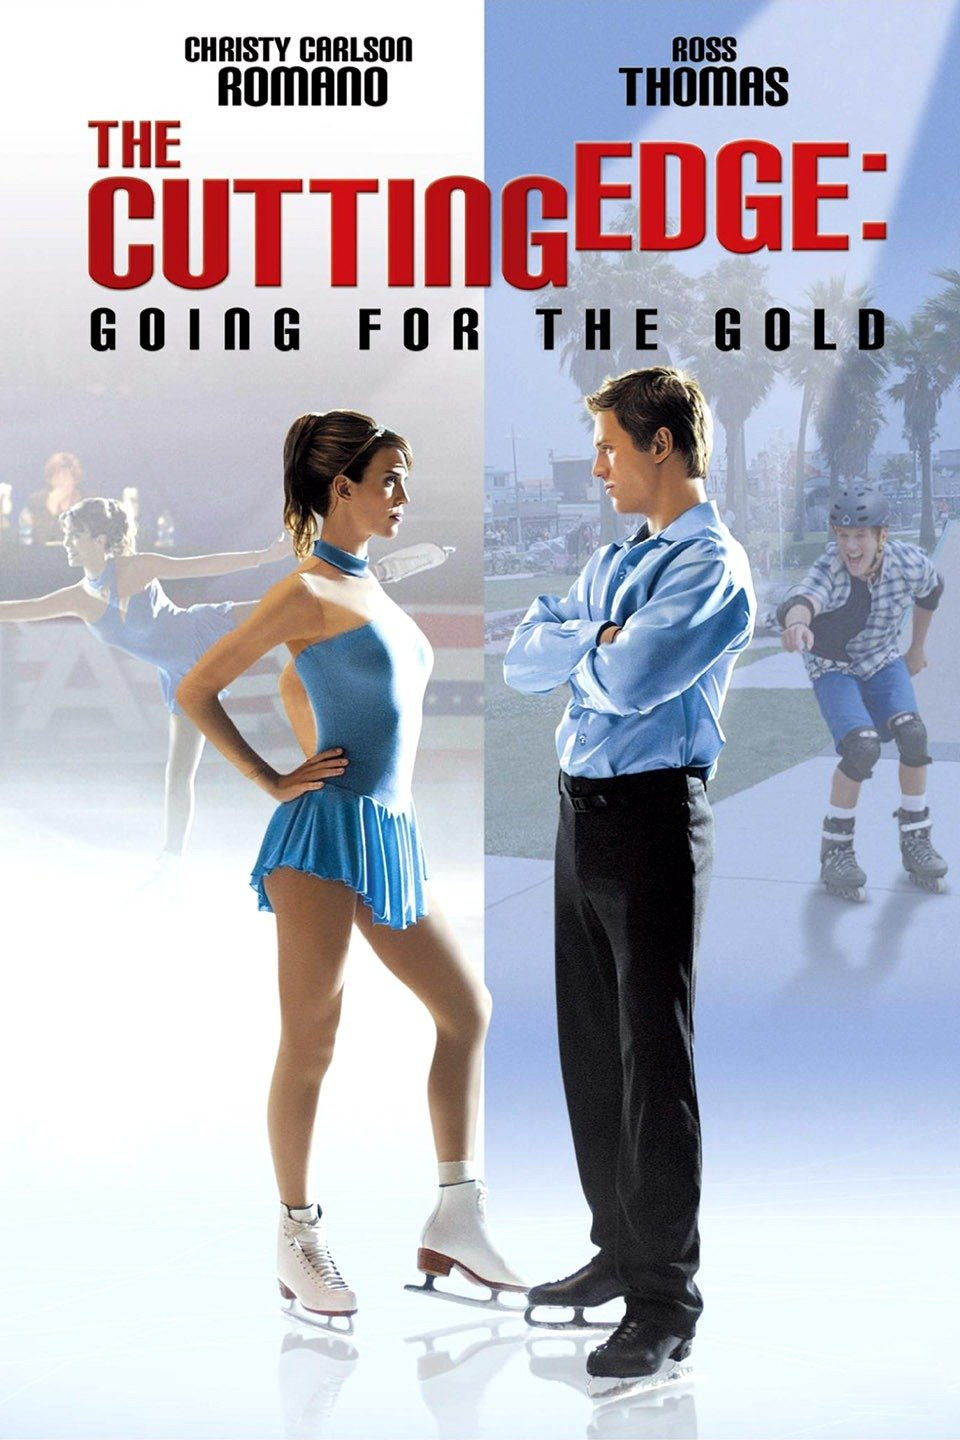 The Cutting Edge: Going for the Gold Dvd (2006)